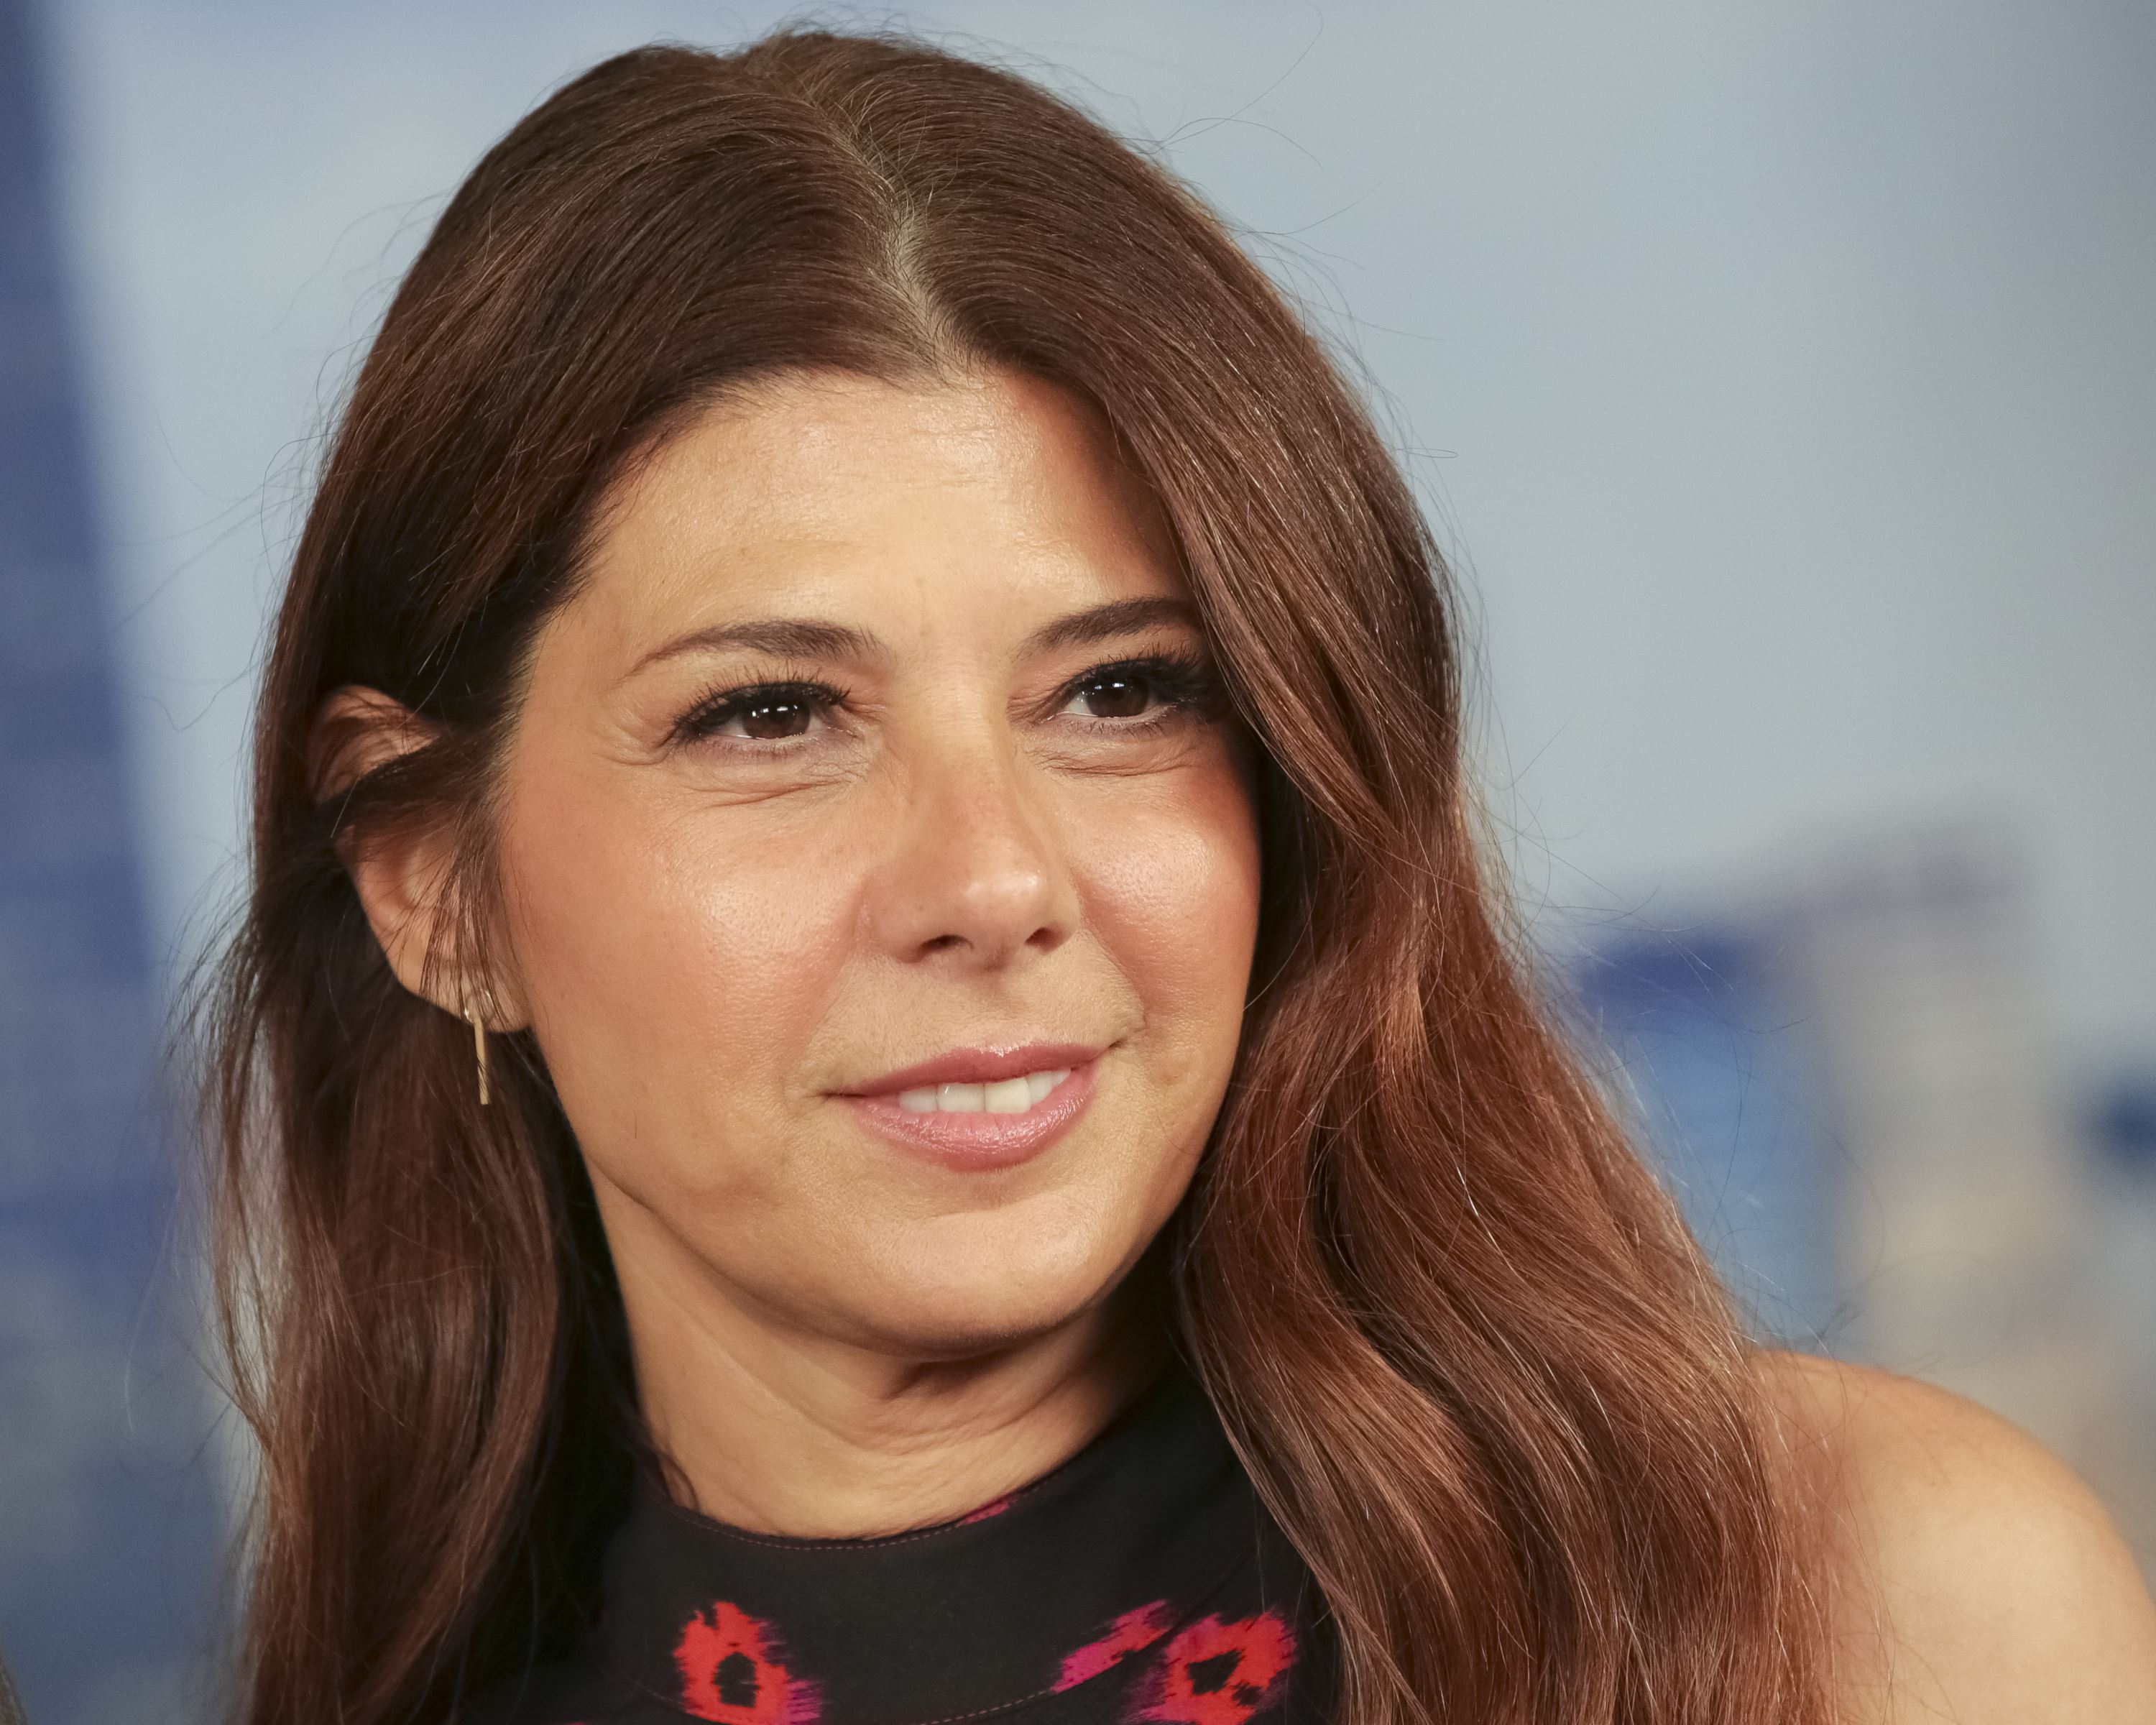 Pictures Marisa Tomei nude (22 foto and video), Sexy, Leaked, Selfie, cleavage 2020